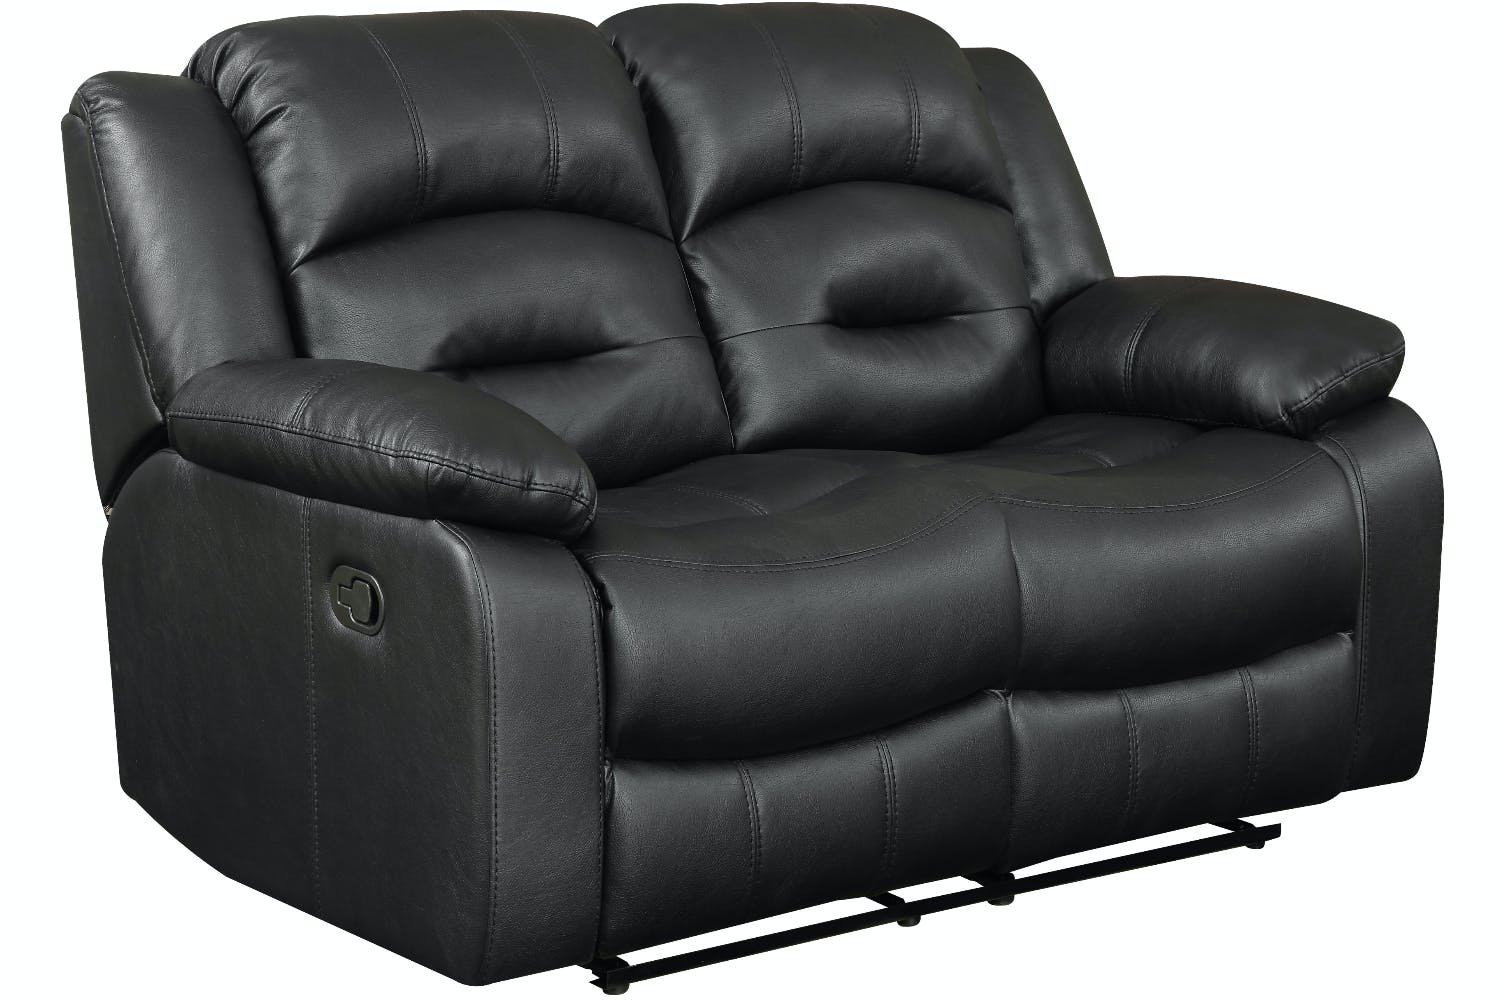 Hunter 2 Seater Recliner Sofa Black